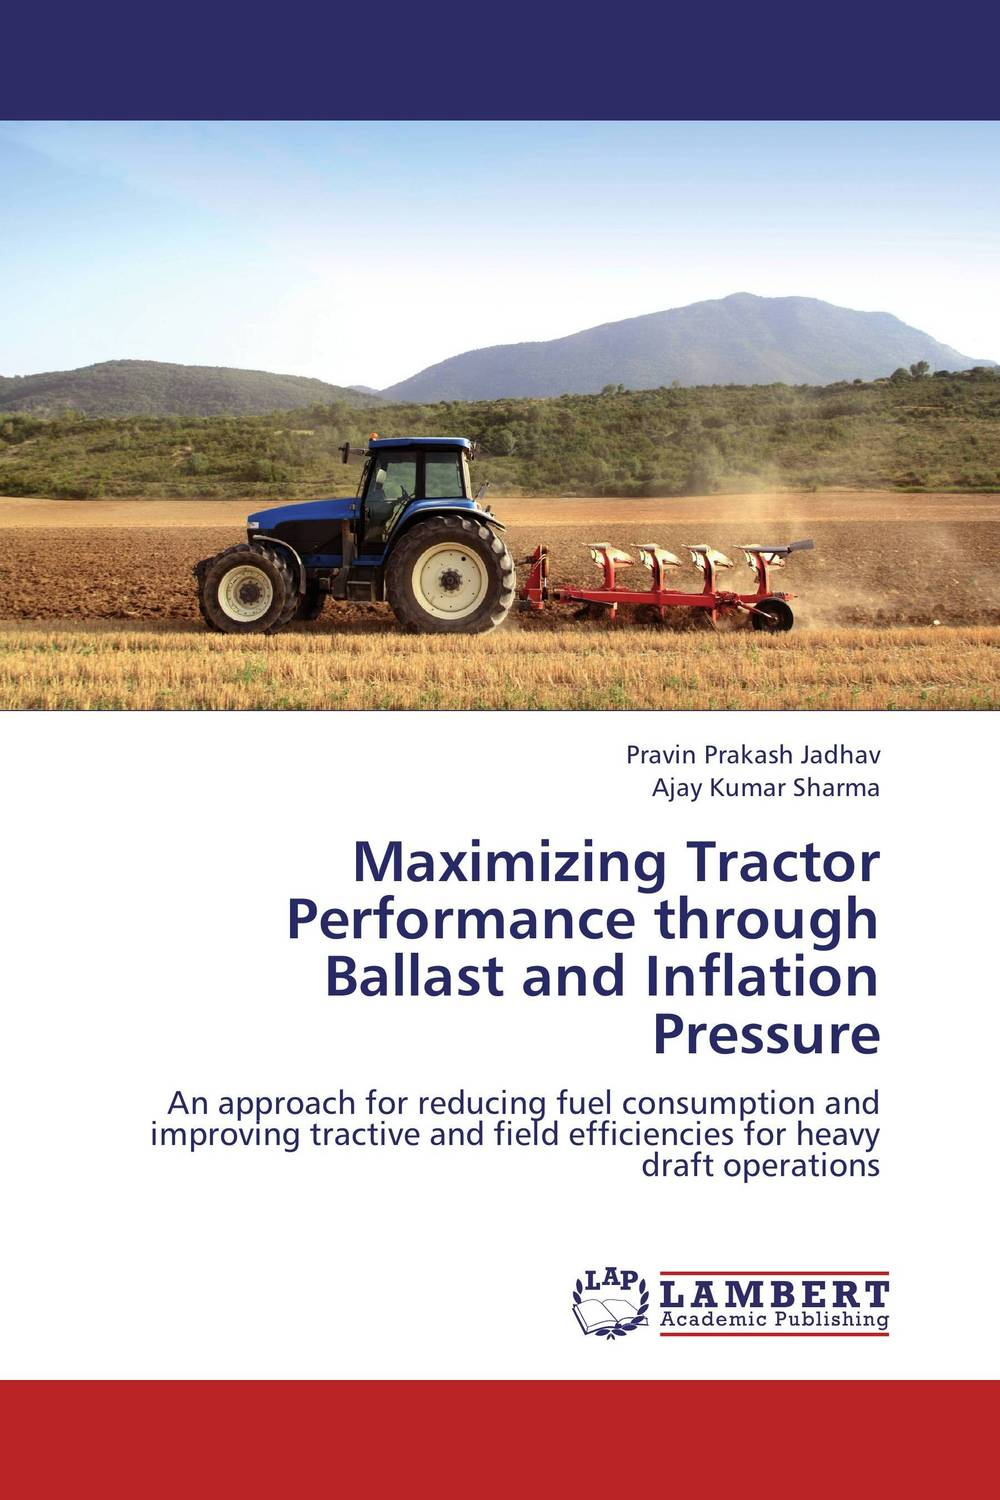 Maximizing Tractor Performance through Ballast and Inflation Pressure quanchai qc385t for foton tractor ft244 ft254 the set of fuel pipes as picture showed part number